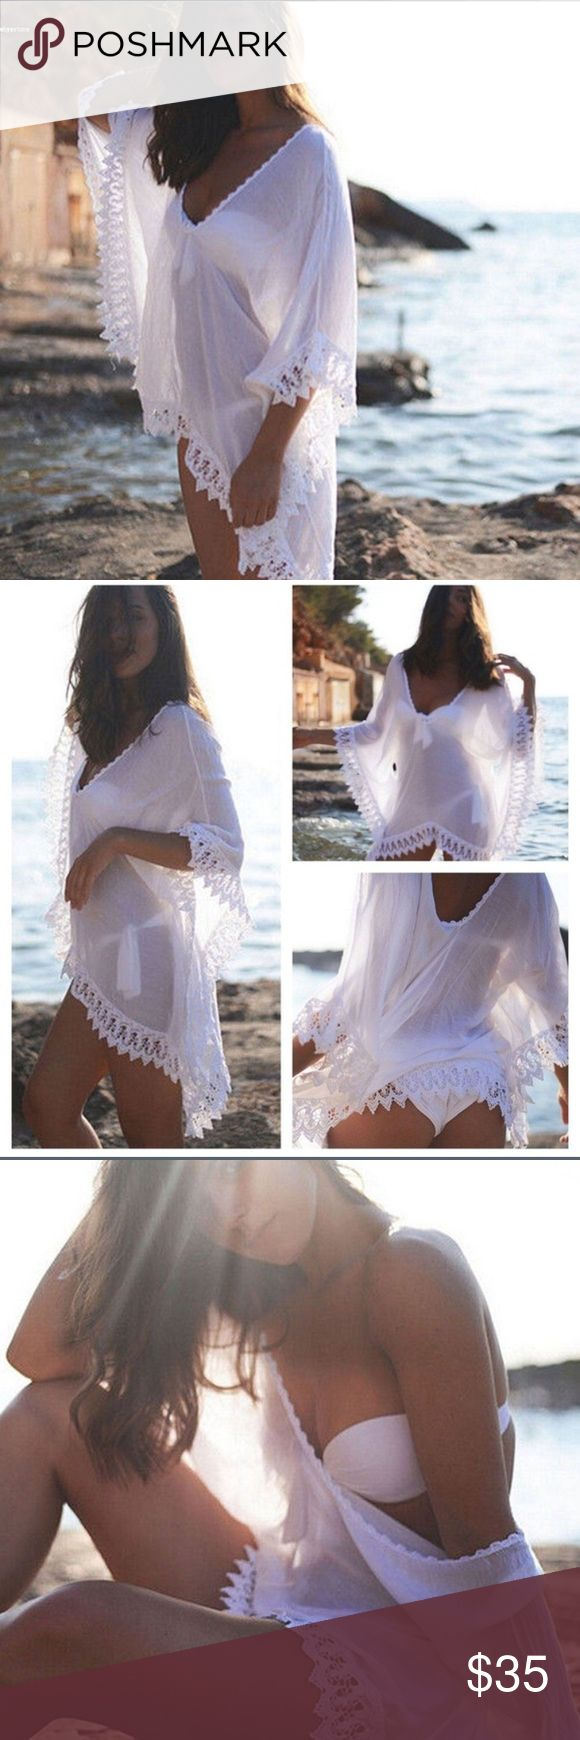 trendy white v neck beach cover up 🌹on the way🌹 This is one size white with lace cute bathing suit cover-up. Exactly as  pictured. 🌹 this is on the way 🌹reserve if interested🌹is new in package Swim Coverups